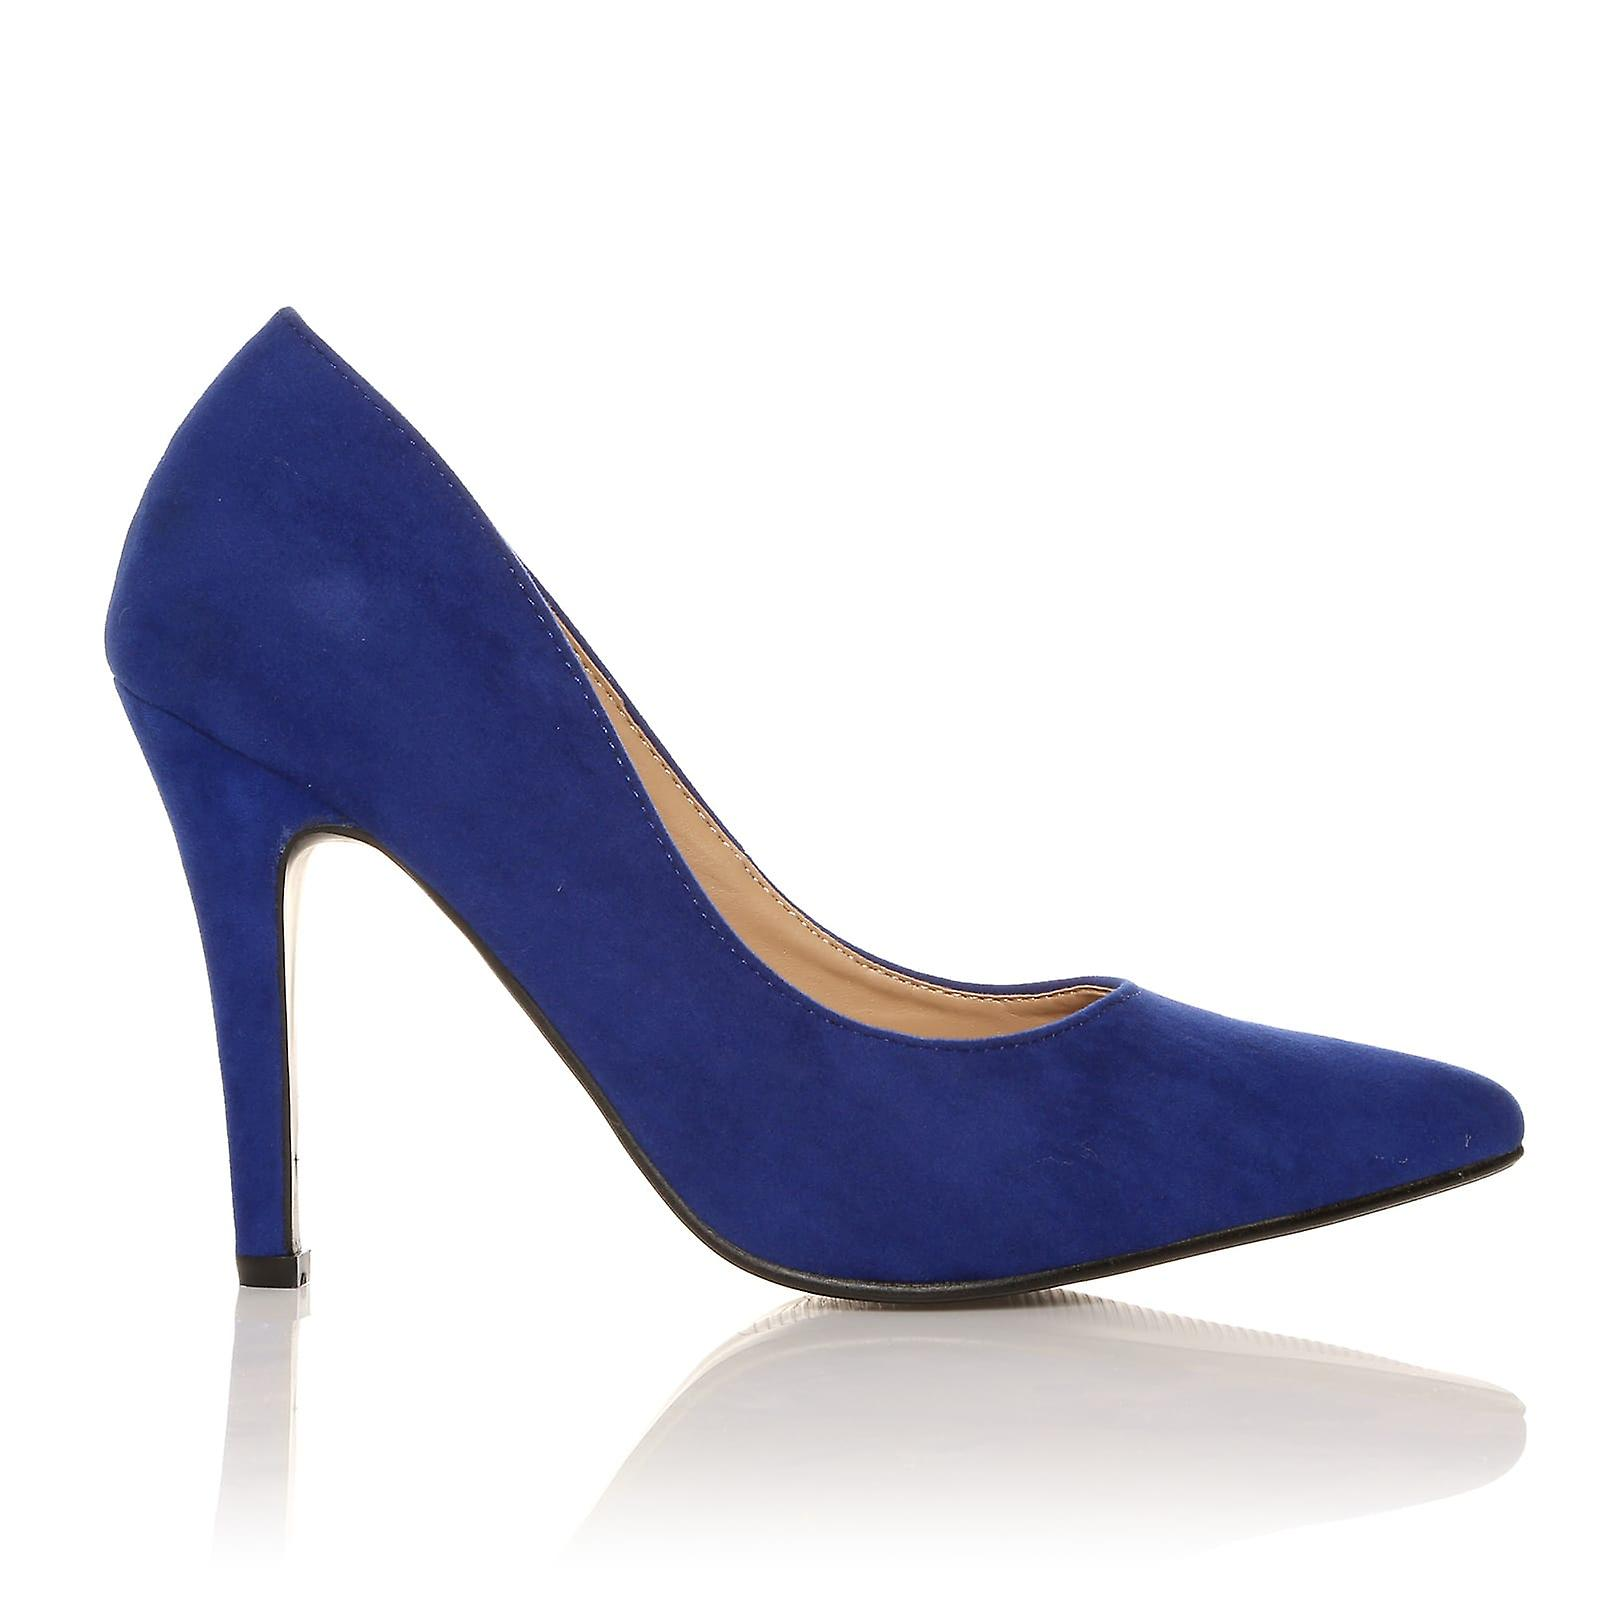 DARCY Electric Blue Faux Suede Stilleto Shoes High Heel Pointed Court Shoes Stilleto e5bff7